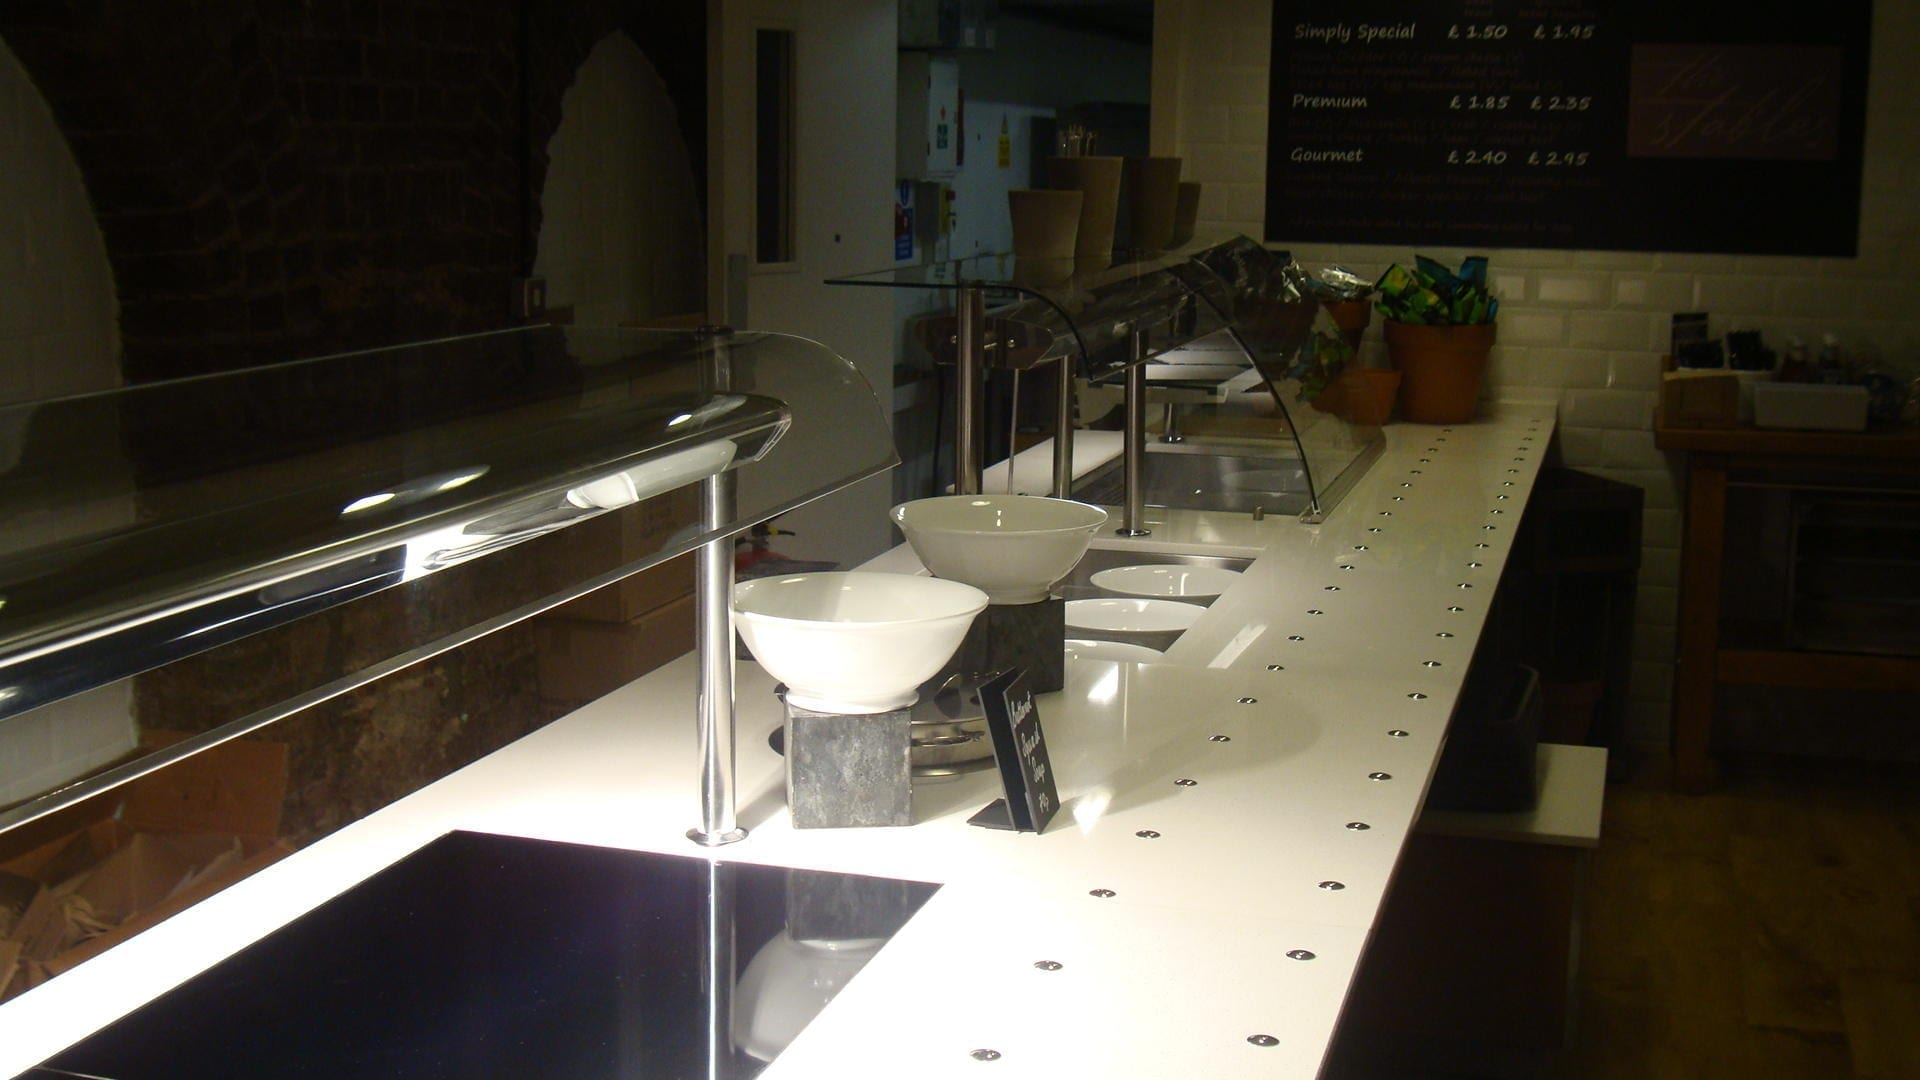 Fullers_Chiswick_Servery_Front_of_house_Servery_Food_Display_spacecatering_7